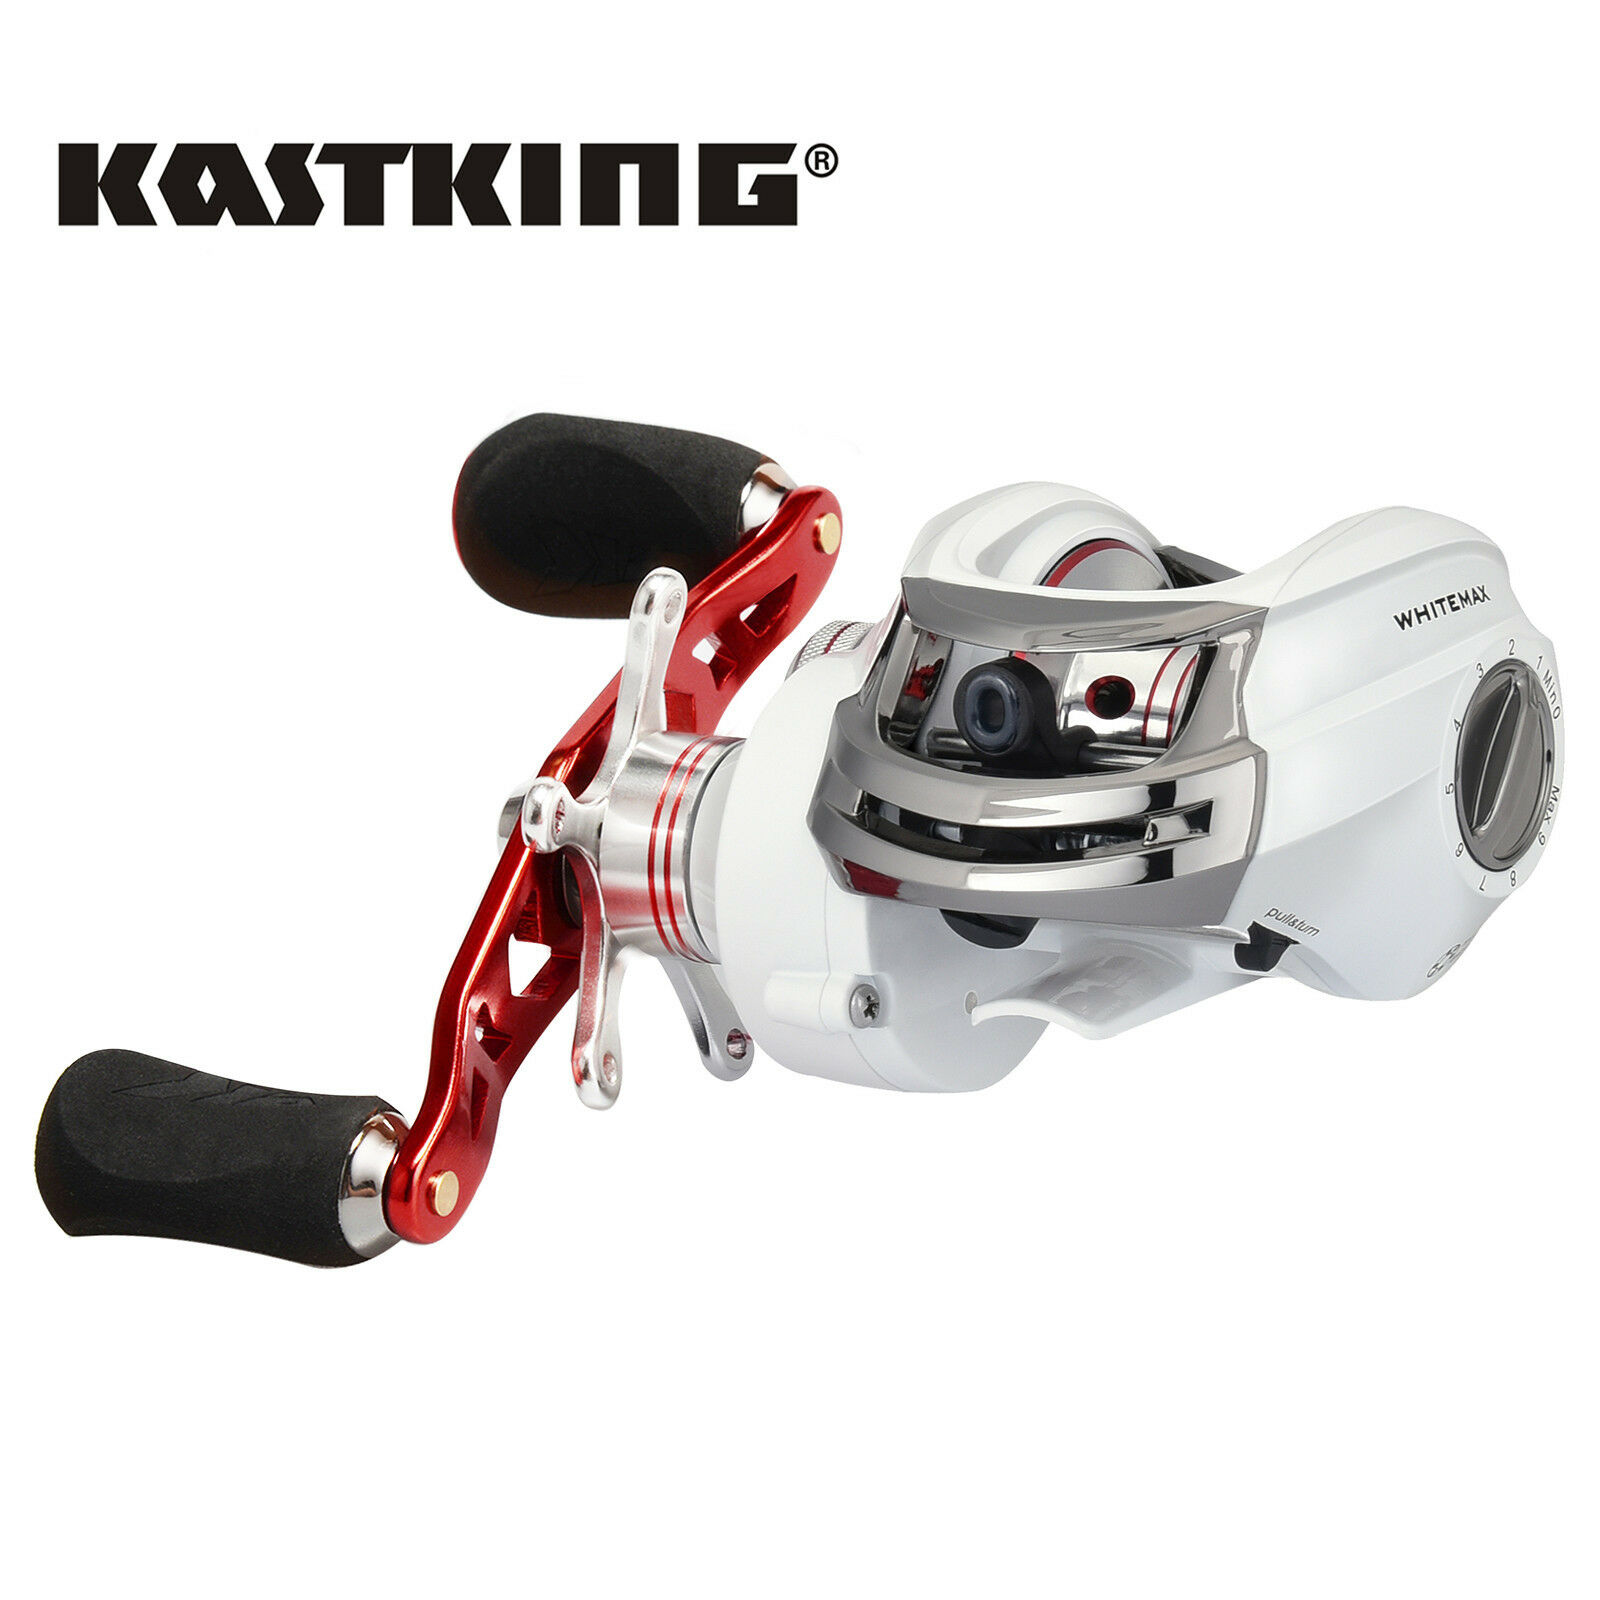 KastKing WhiteMax Baitcasting Reel Low Profile Freshwate Baitcaster  - Right Hand  high-quality merchandise and convenient, honest service